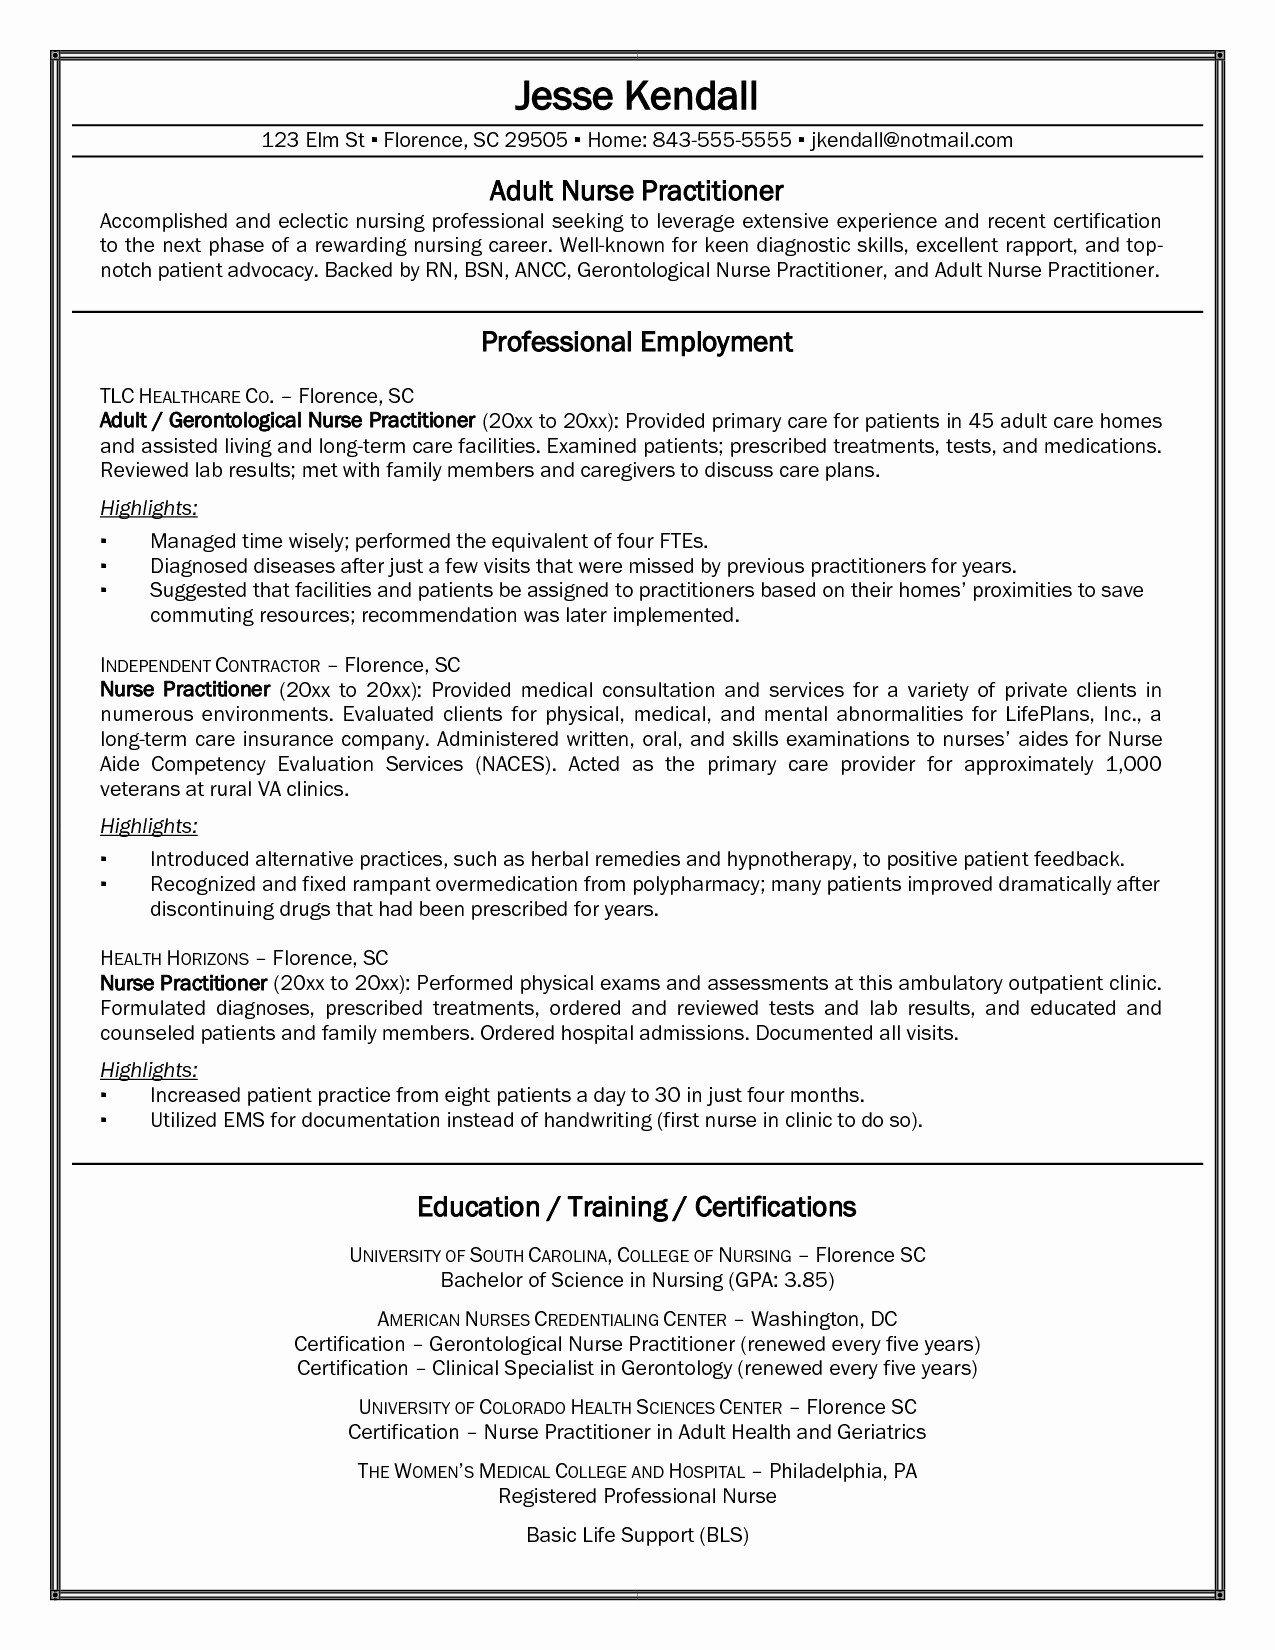 Nicu Nurse Responsibilities Resume - Private Duty Nurse Sample Resume – Legacylendinggroup